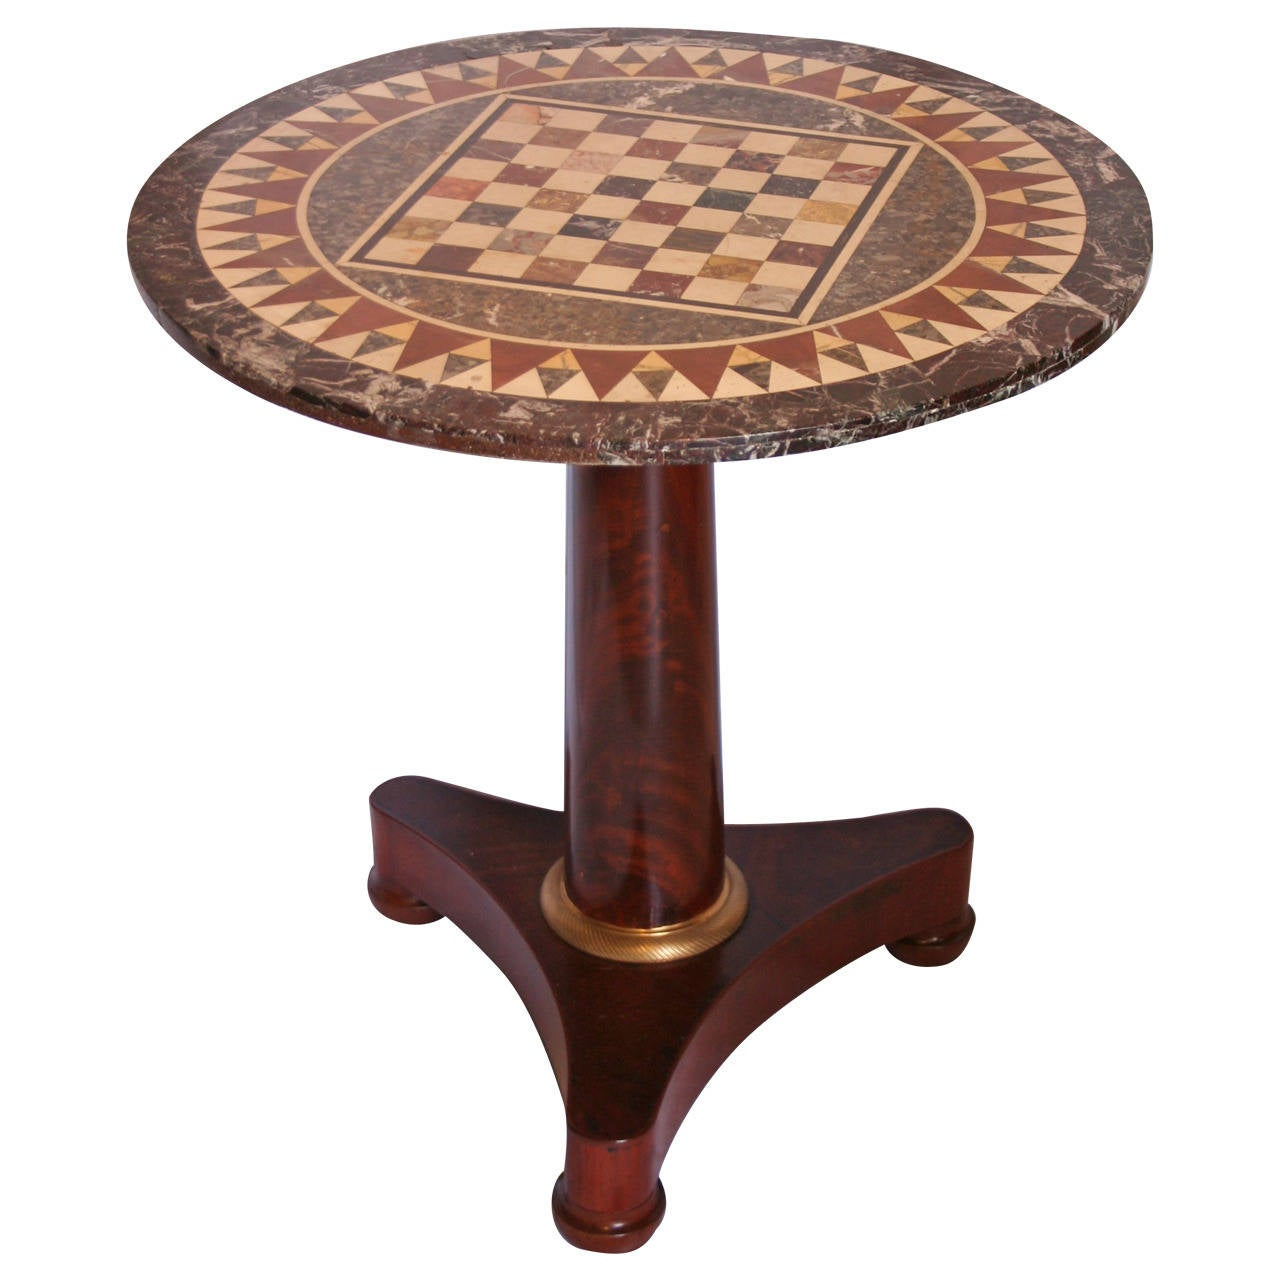 Marble Inlay Table Tops : Small first empire table with inlaid marble top at stdibs